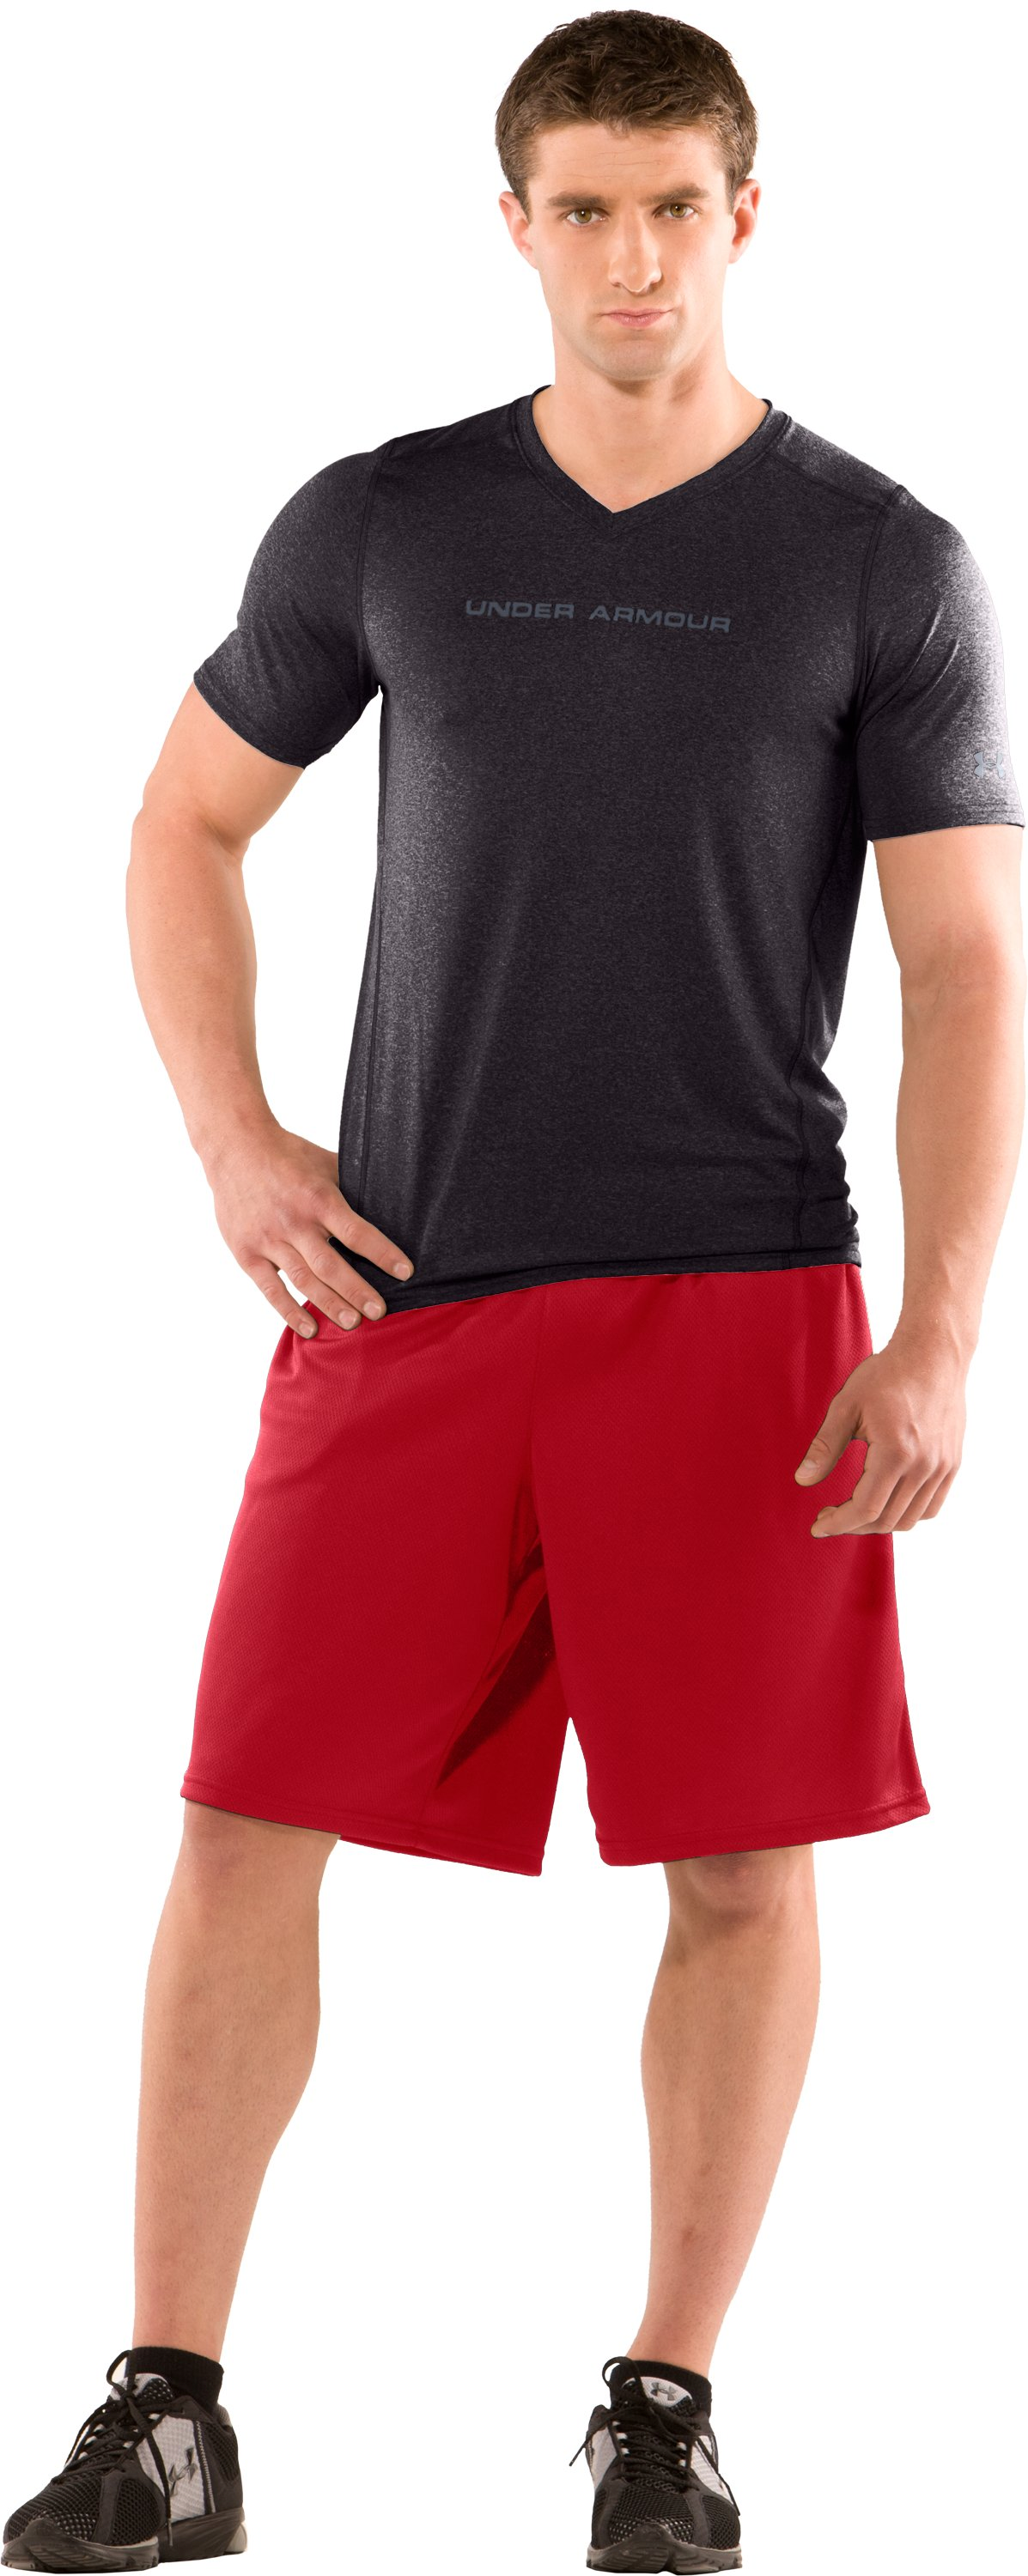 Men's HeatGear® Touch Fitted Short Sleeve V-Neck T-Shirt, Carbon Heather, zoomed image